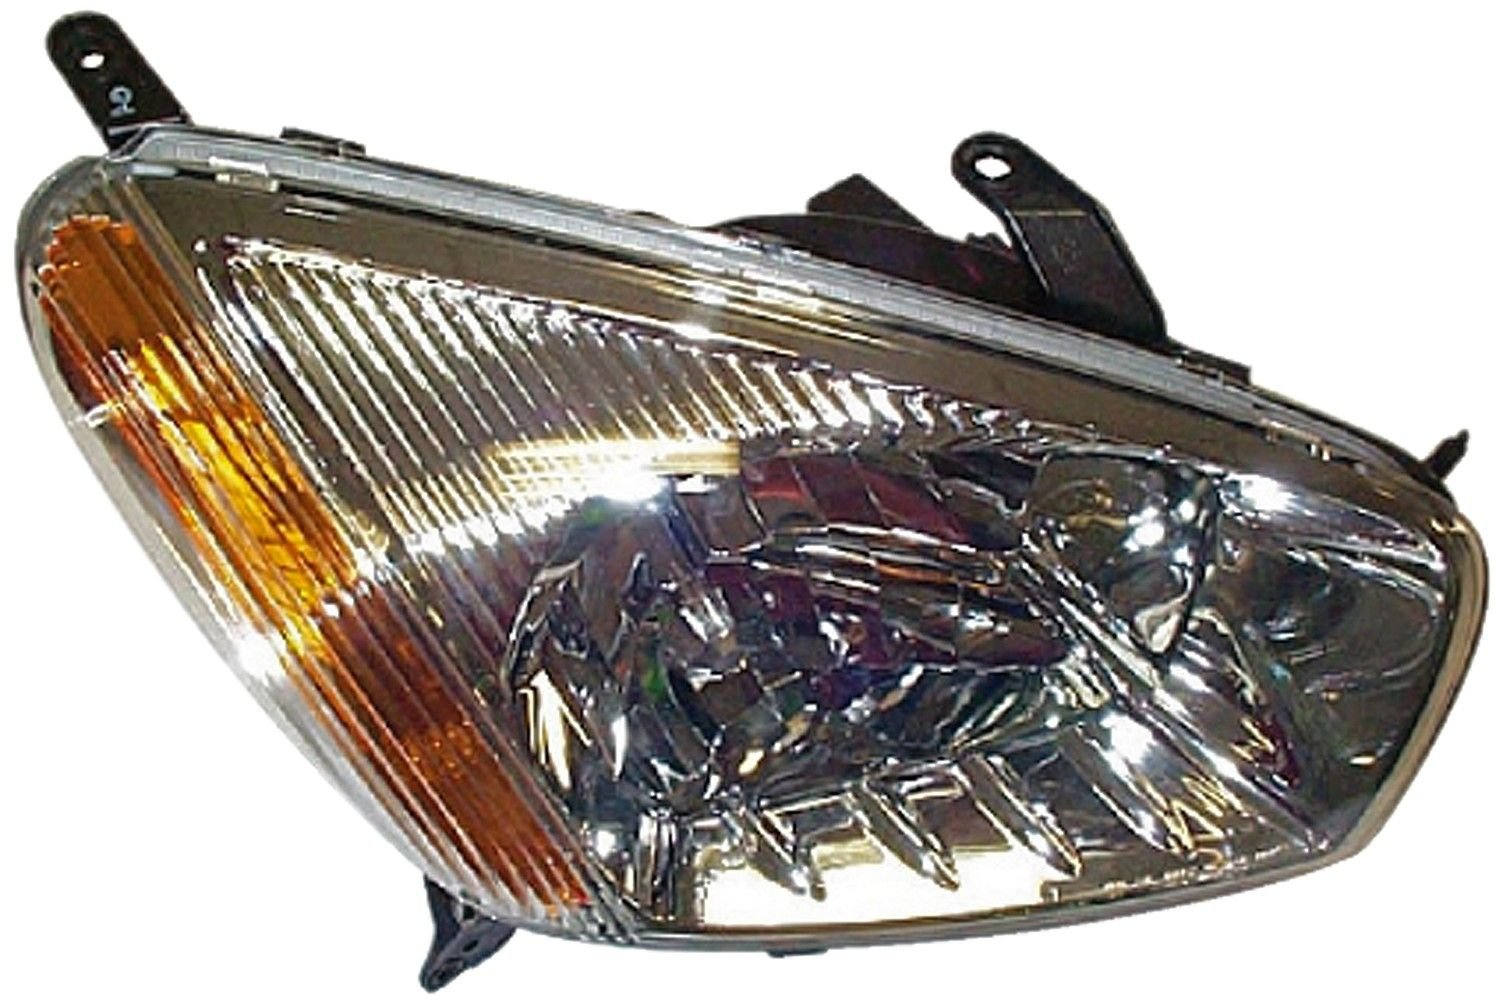 Toyota Rav4 Headlight Assembly Replacement Dorman Tyc Products 2001 Lights Right 1591869 Excludes Sport